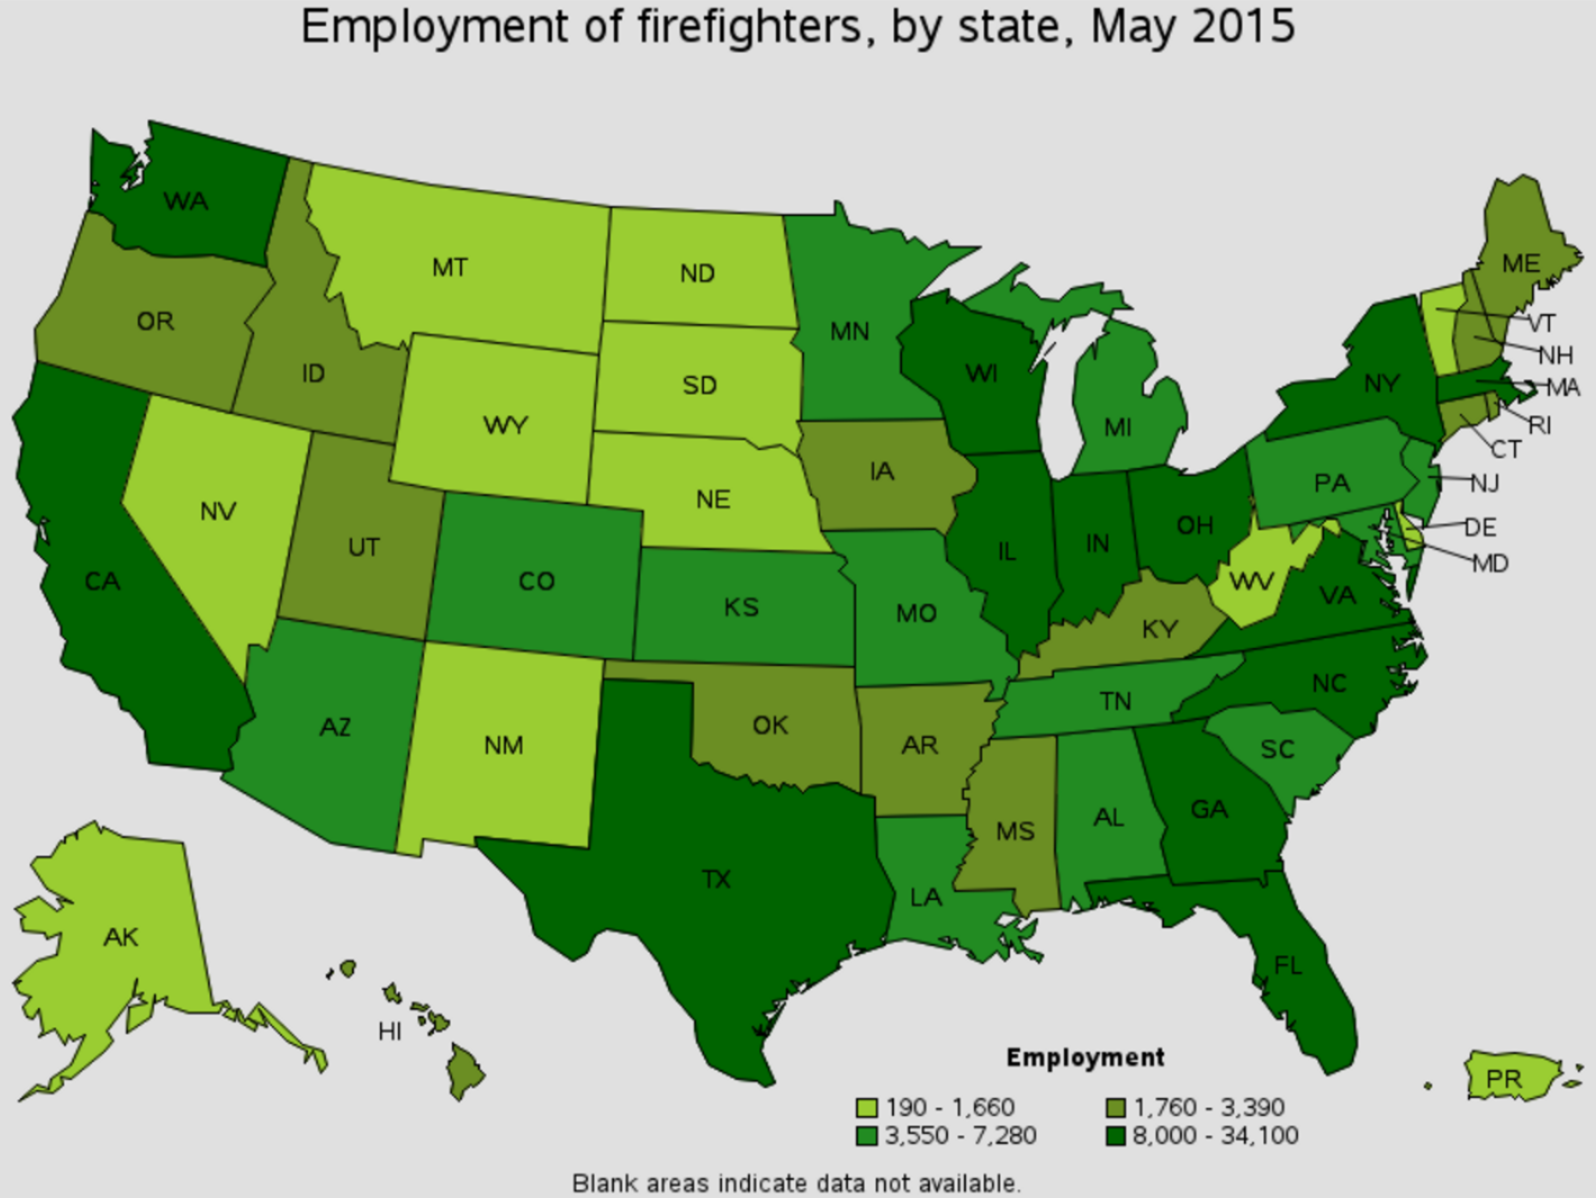 firefighter job outlook by state Norfolk Virginia